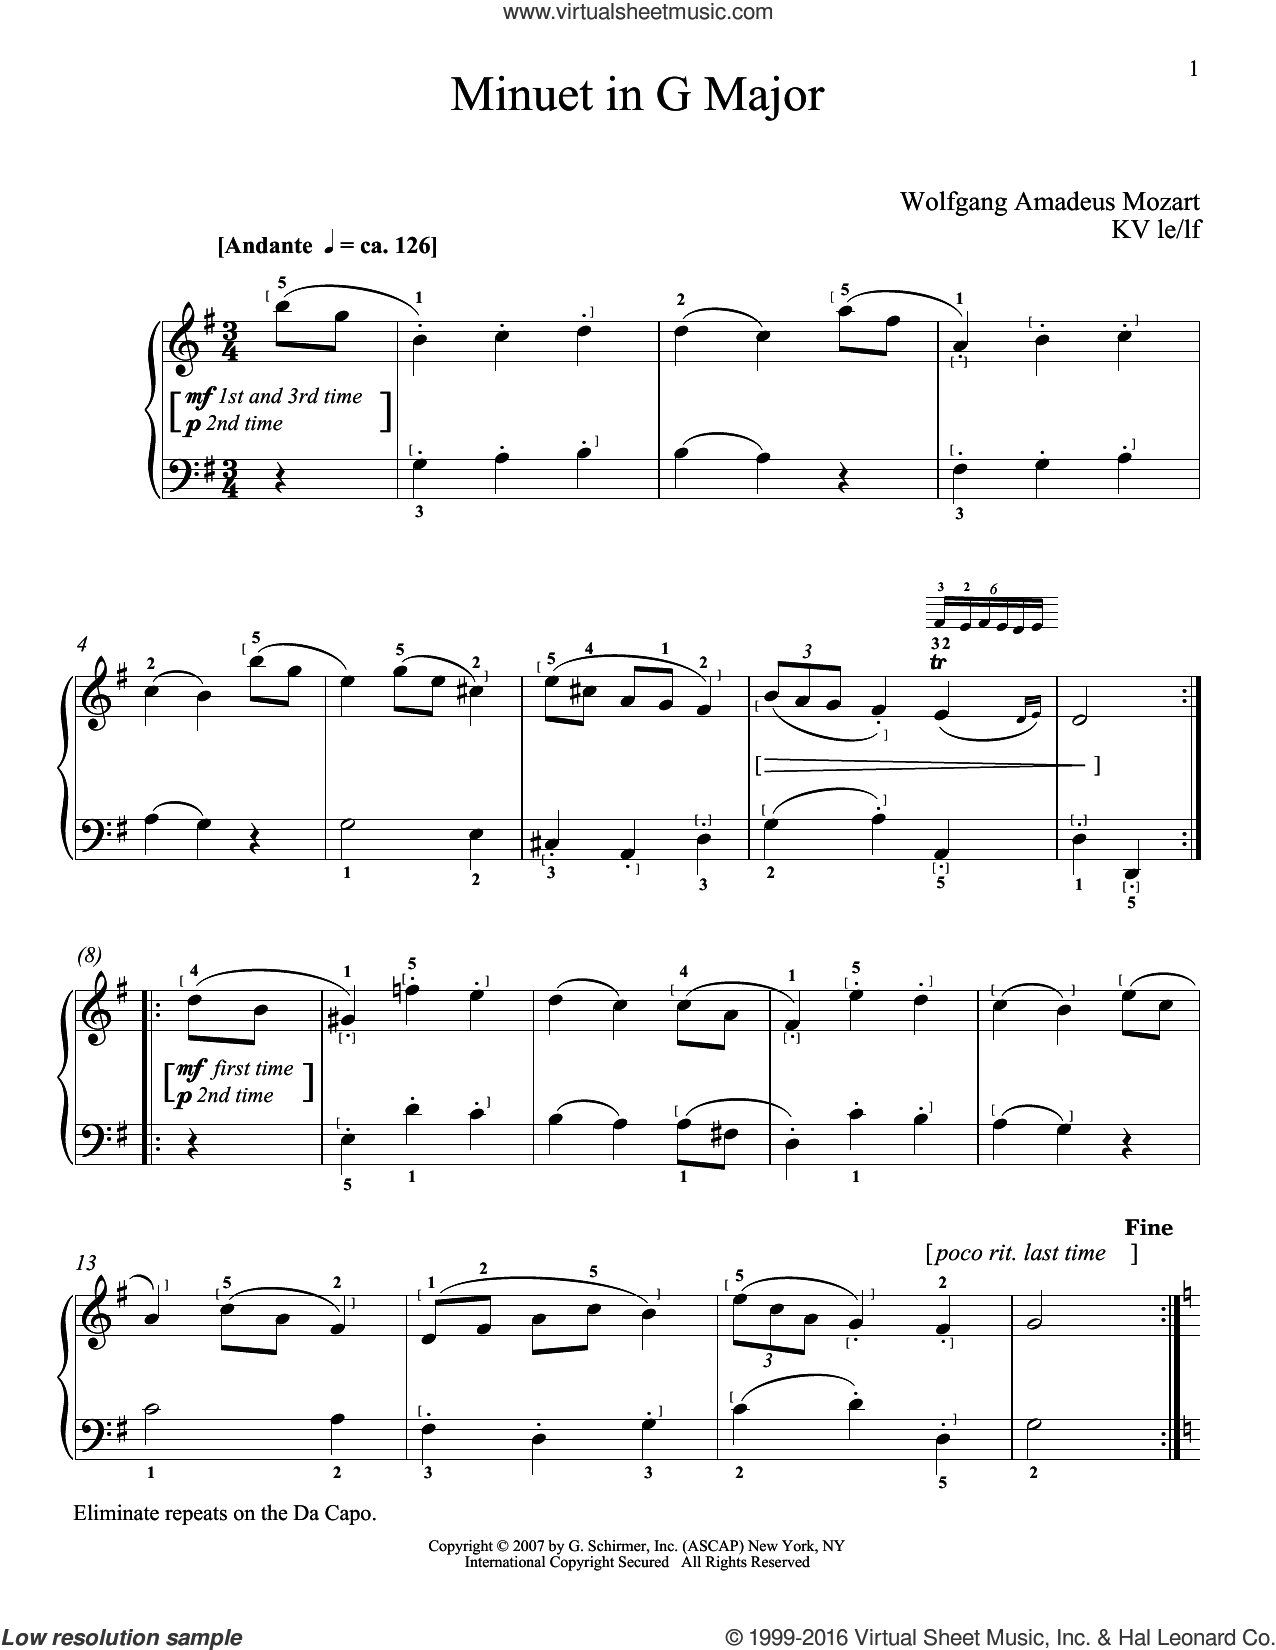 Minuet In G Major, K. 1 sheet music for piano solo by Wolfgang Amadeus Mozart, classical score, intermediate skill level